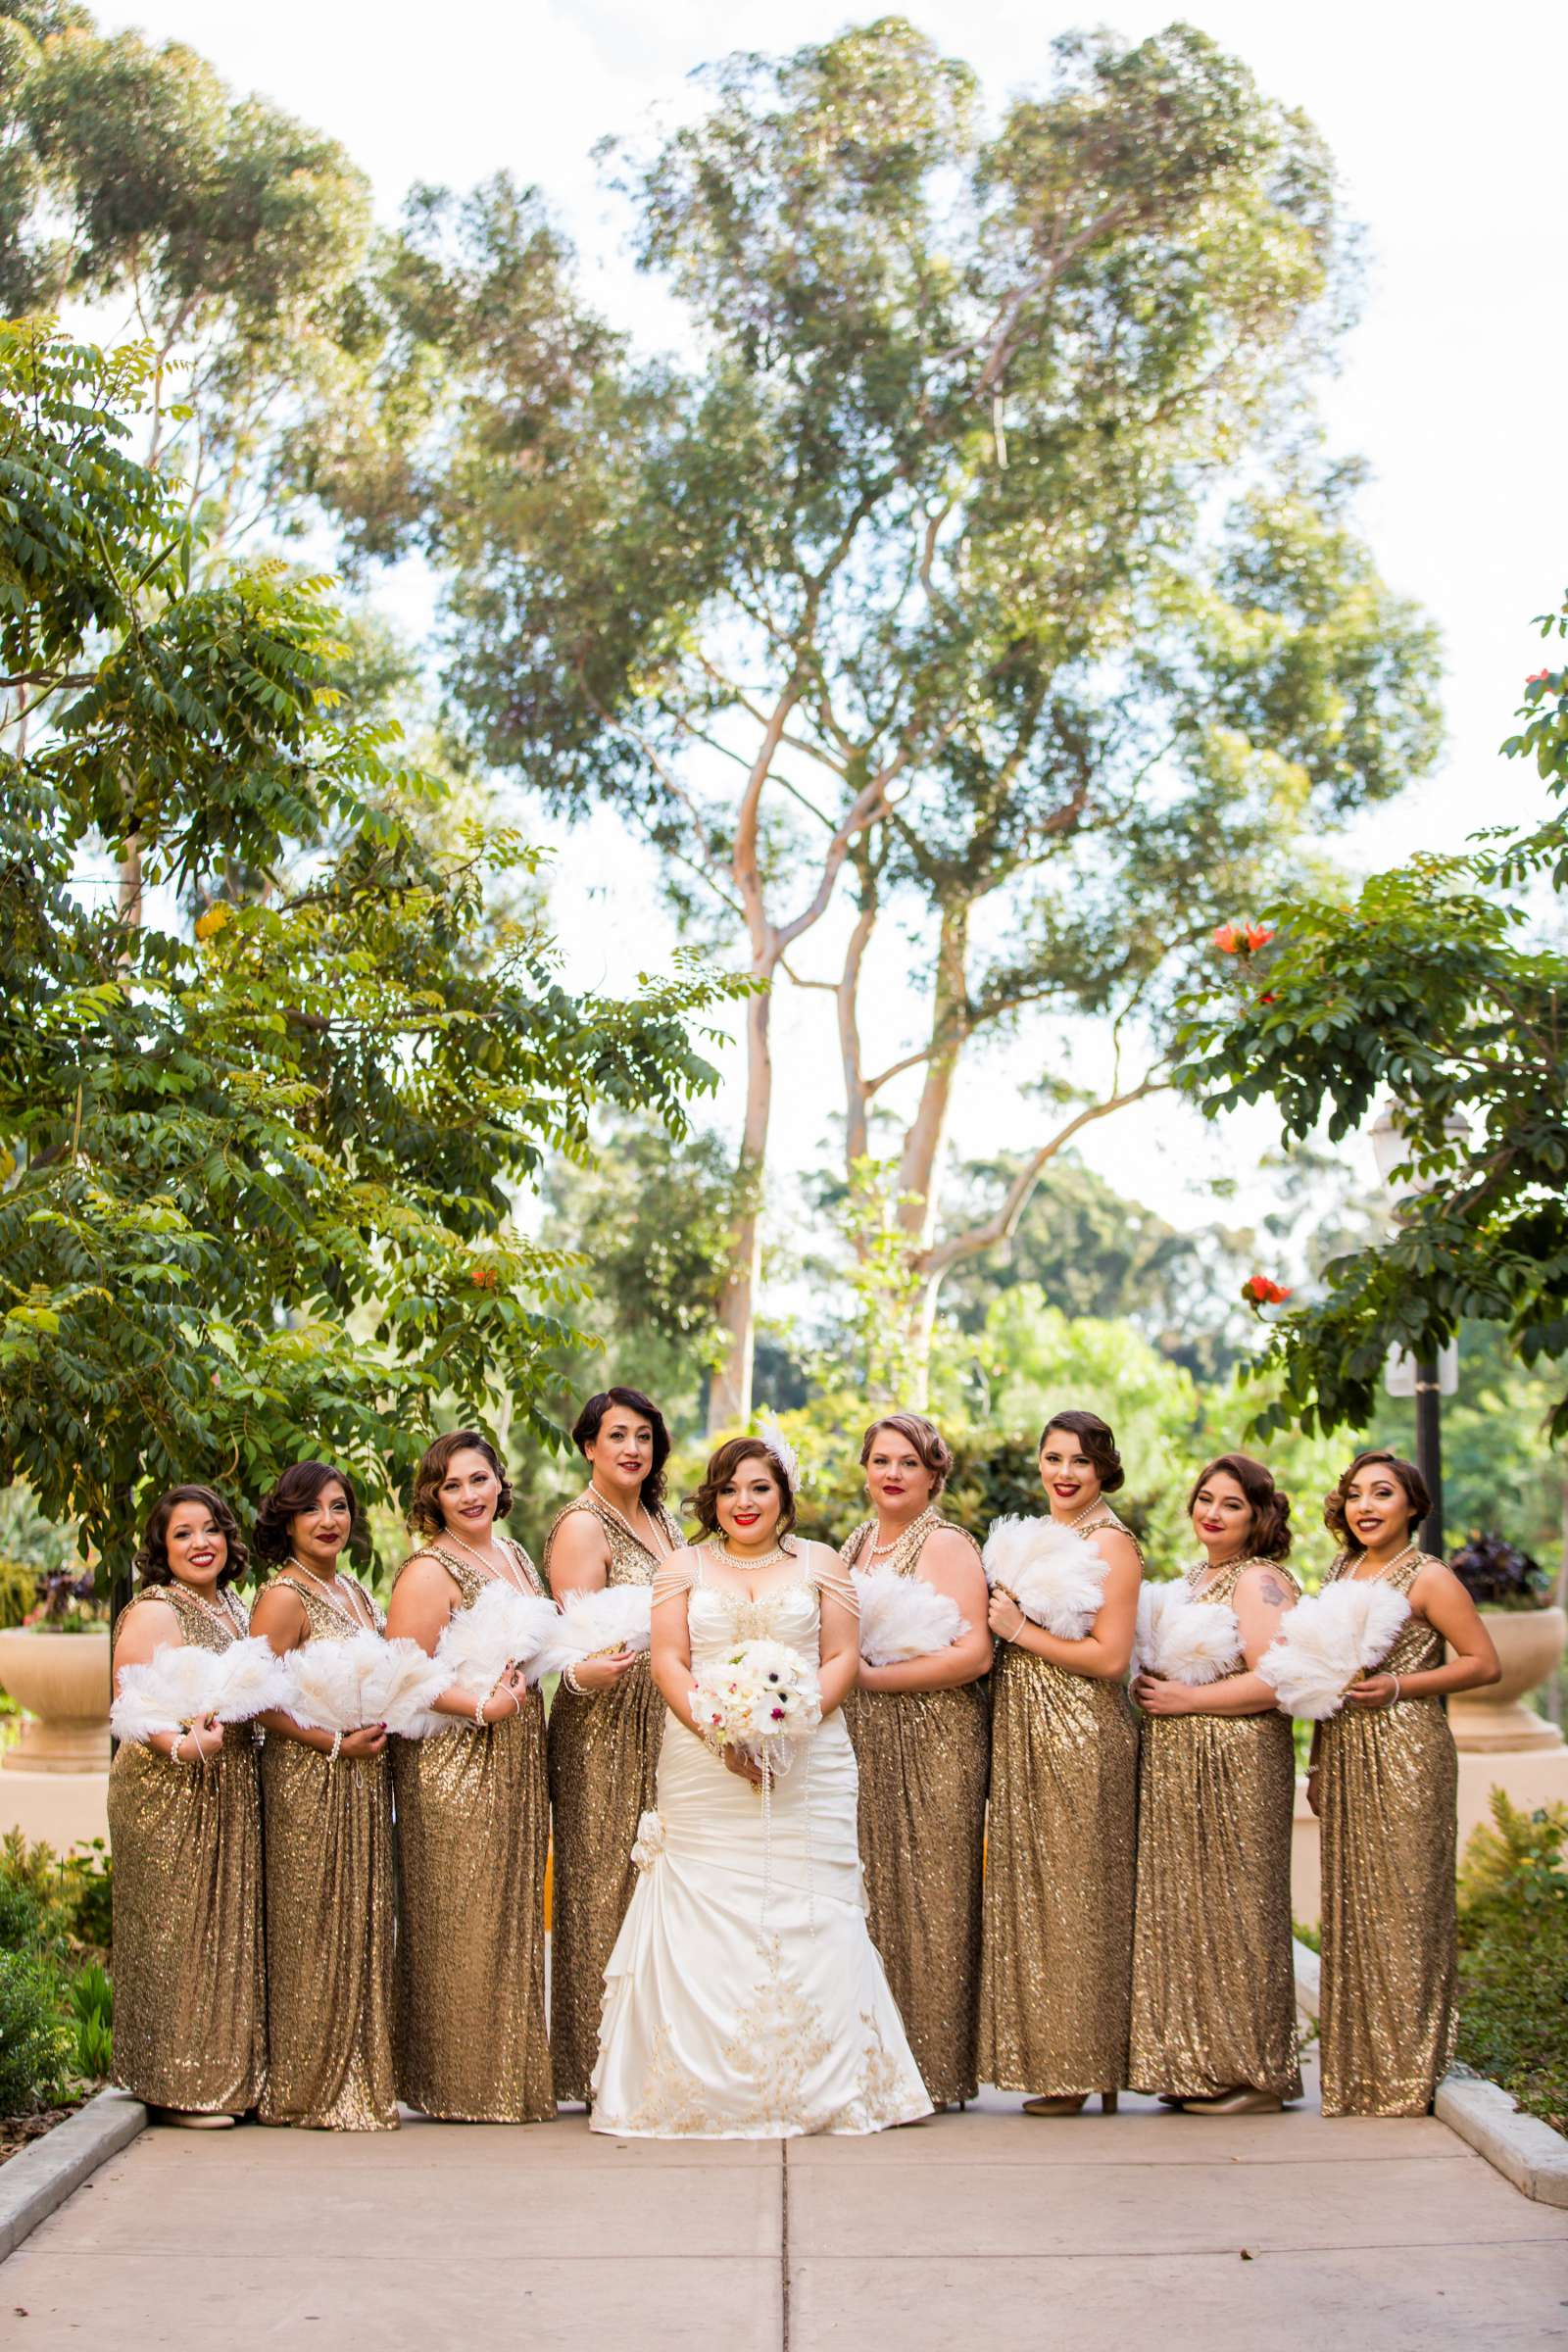 The Prado Wedding coordinated by Breezy Day Weddings, Aalis and Michael Wedding Photo #57 by True Photography